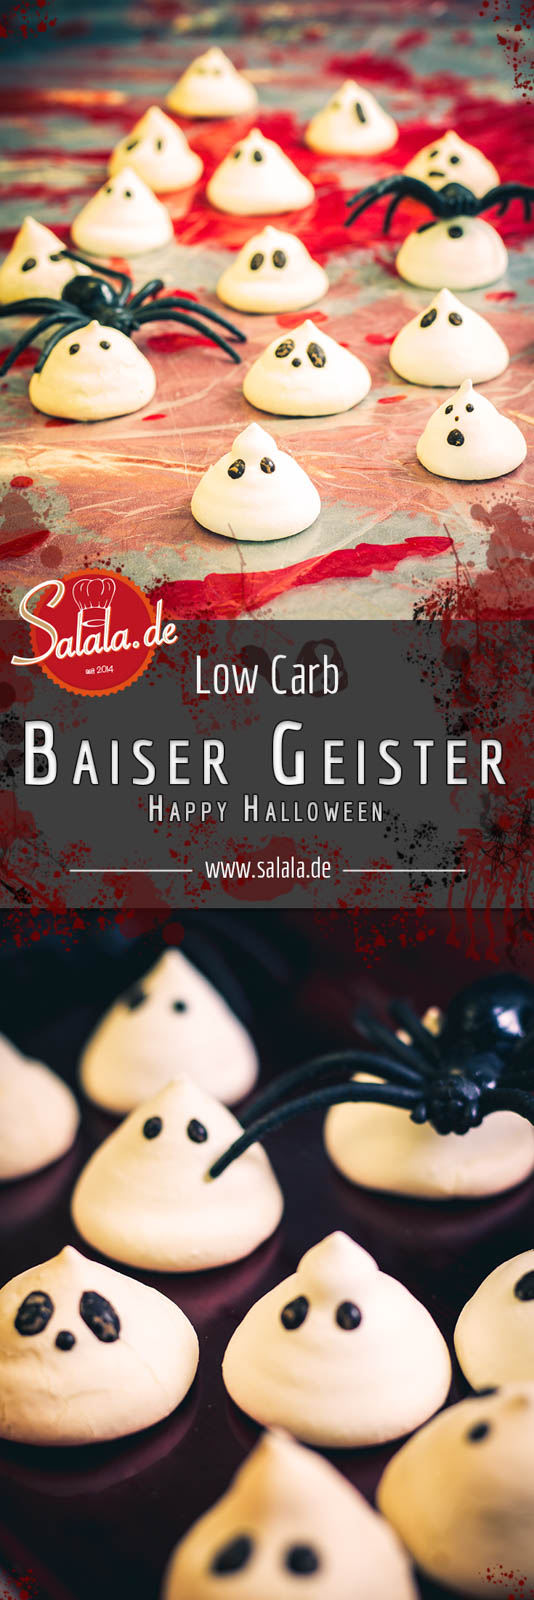 low carb baisergeister halloween 2017 low carb mit vroni nico. Black Bedroom Furniture Sets. Home Design Ideas